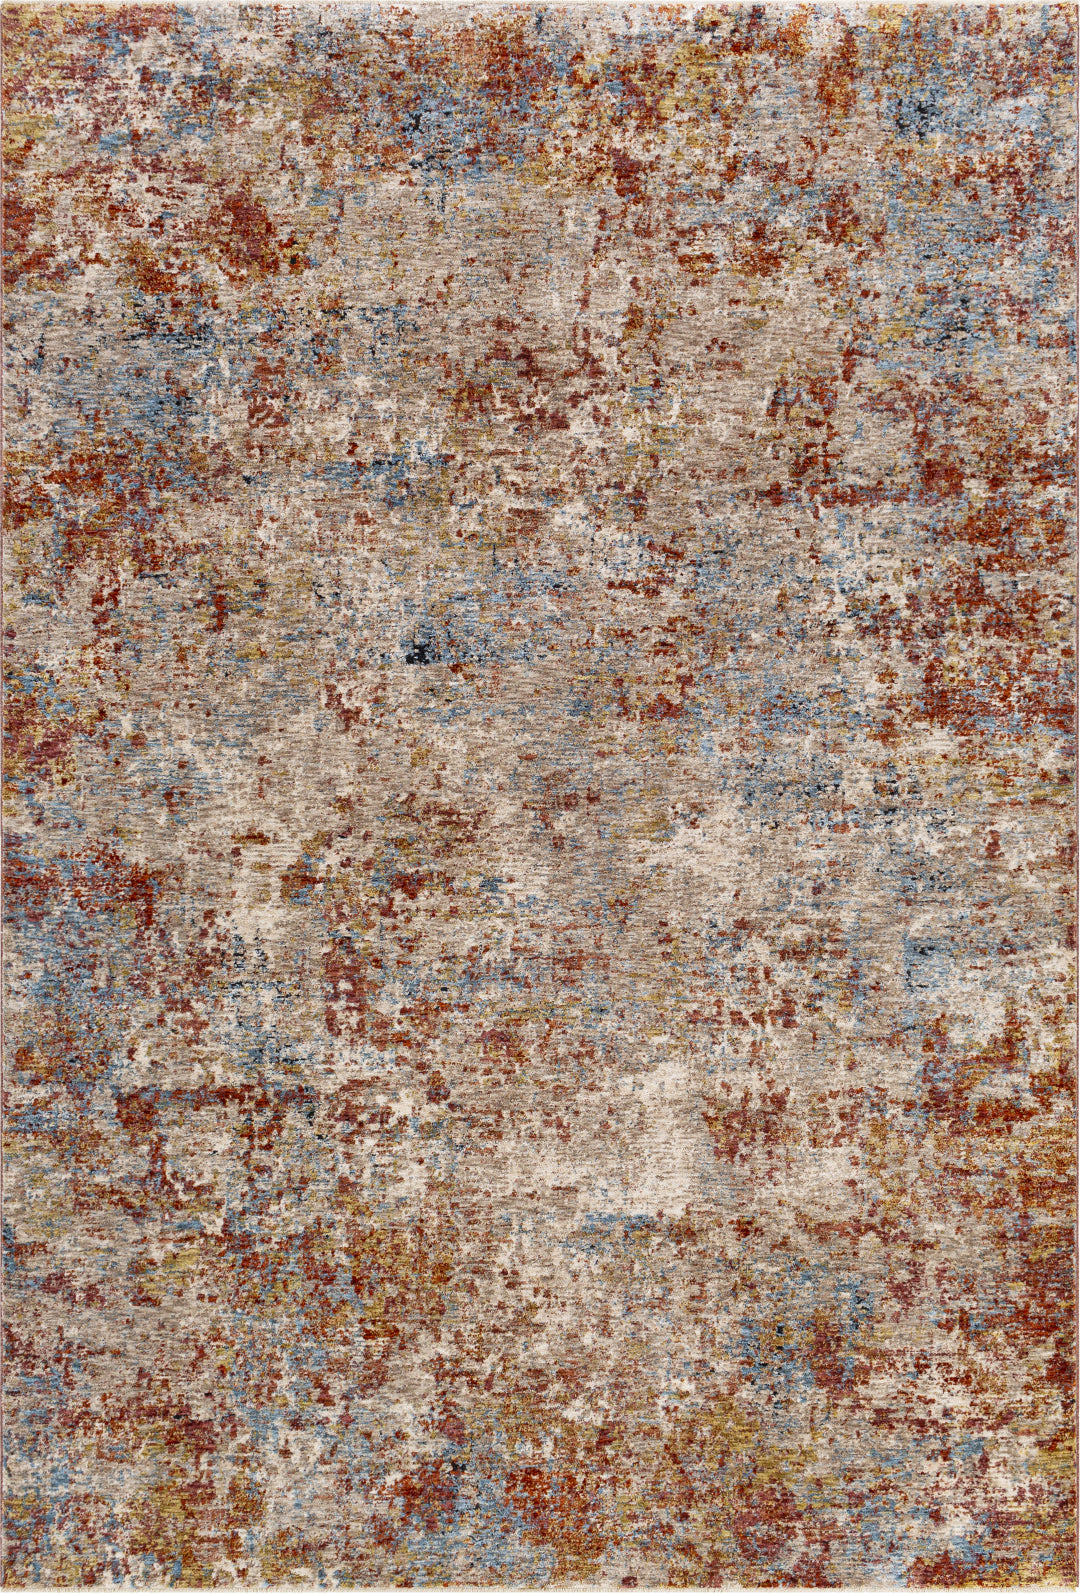 Surya Mirabel MBE-2300 Area Rug by Artistic Weavers main image